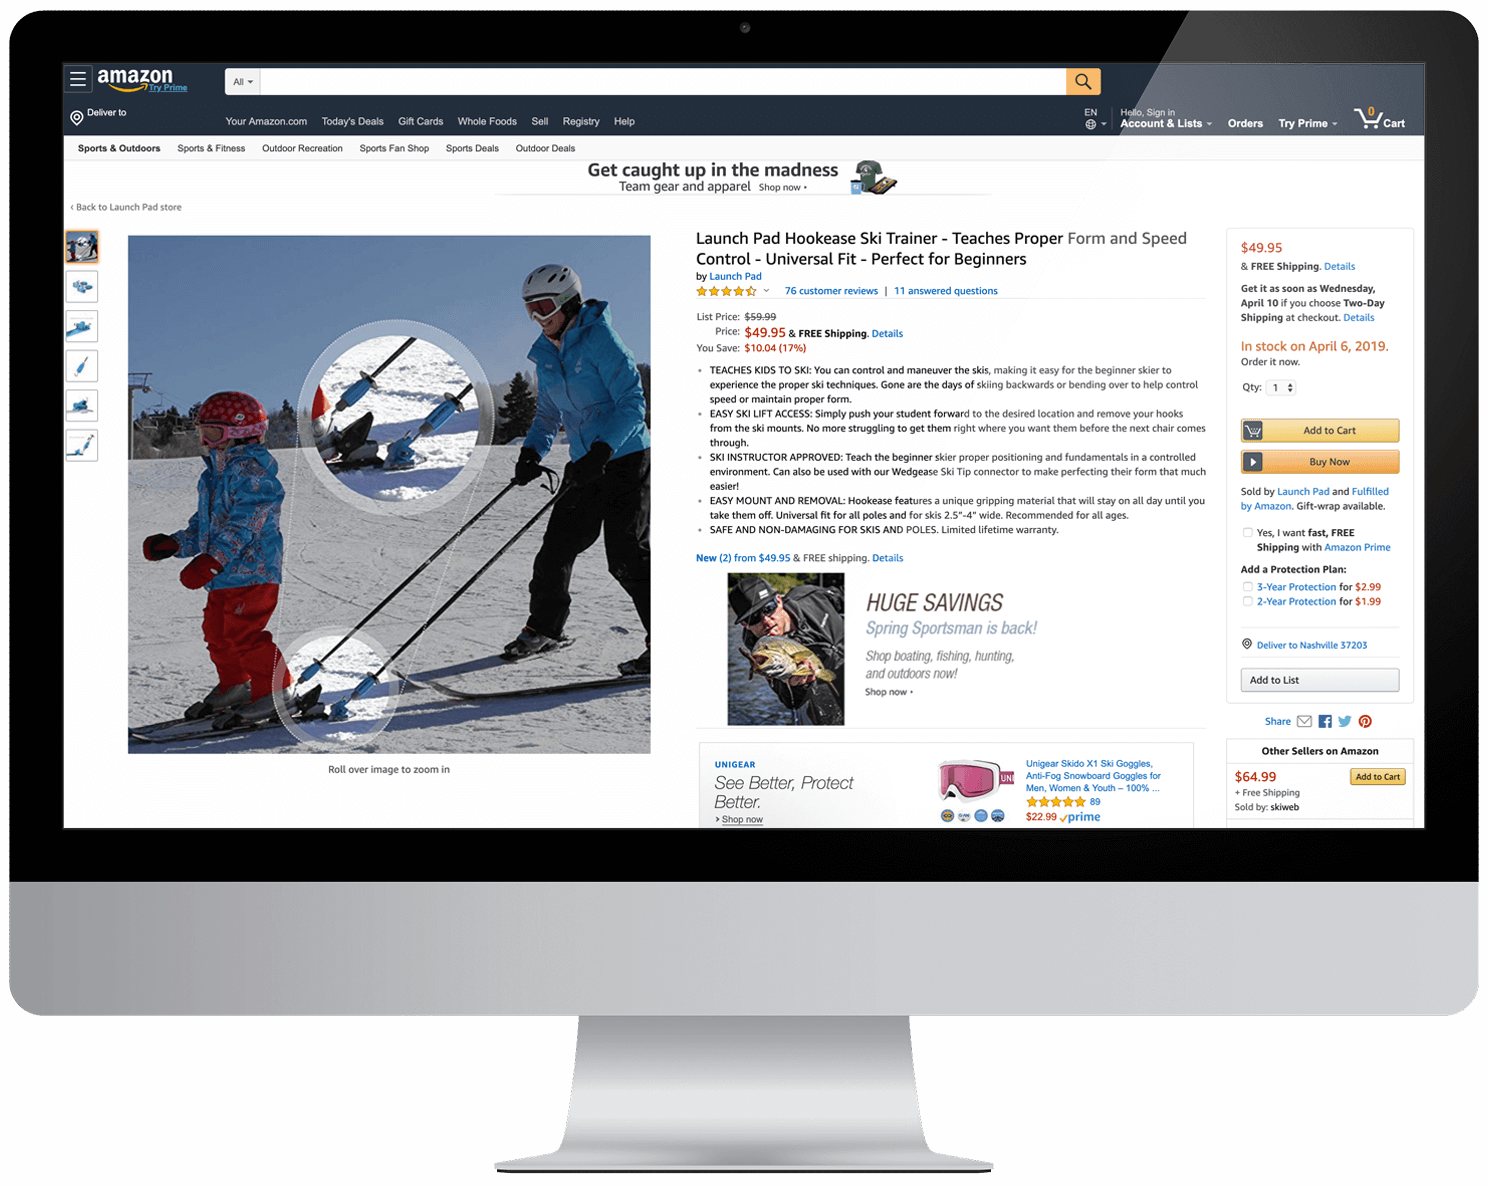 Computer showing launch pad hookease ski trainer Amazon product listing